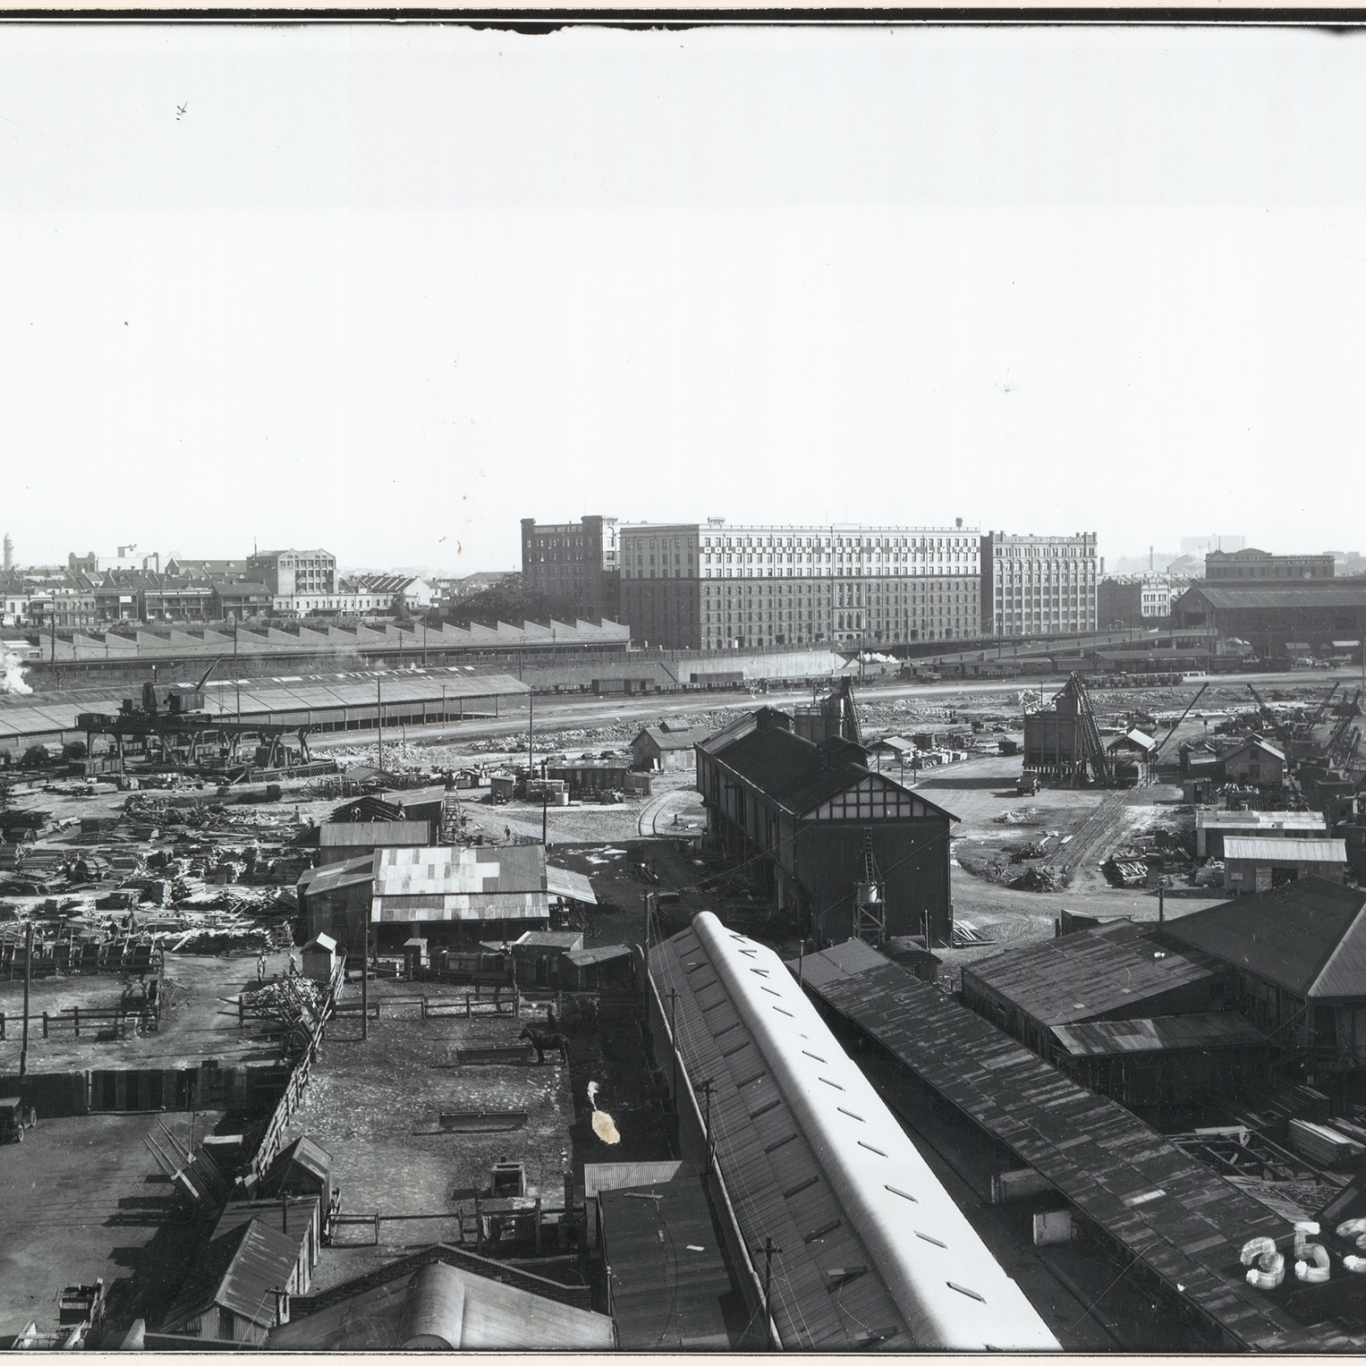 Black and white photograph looking over rooflines.